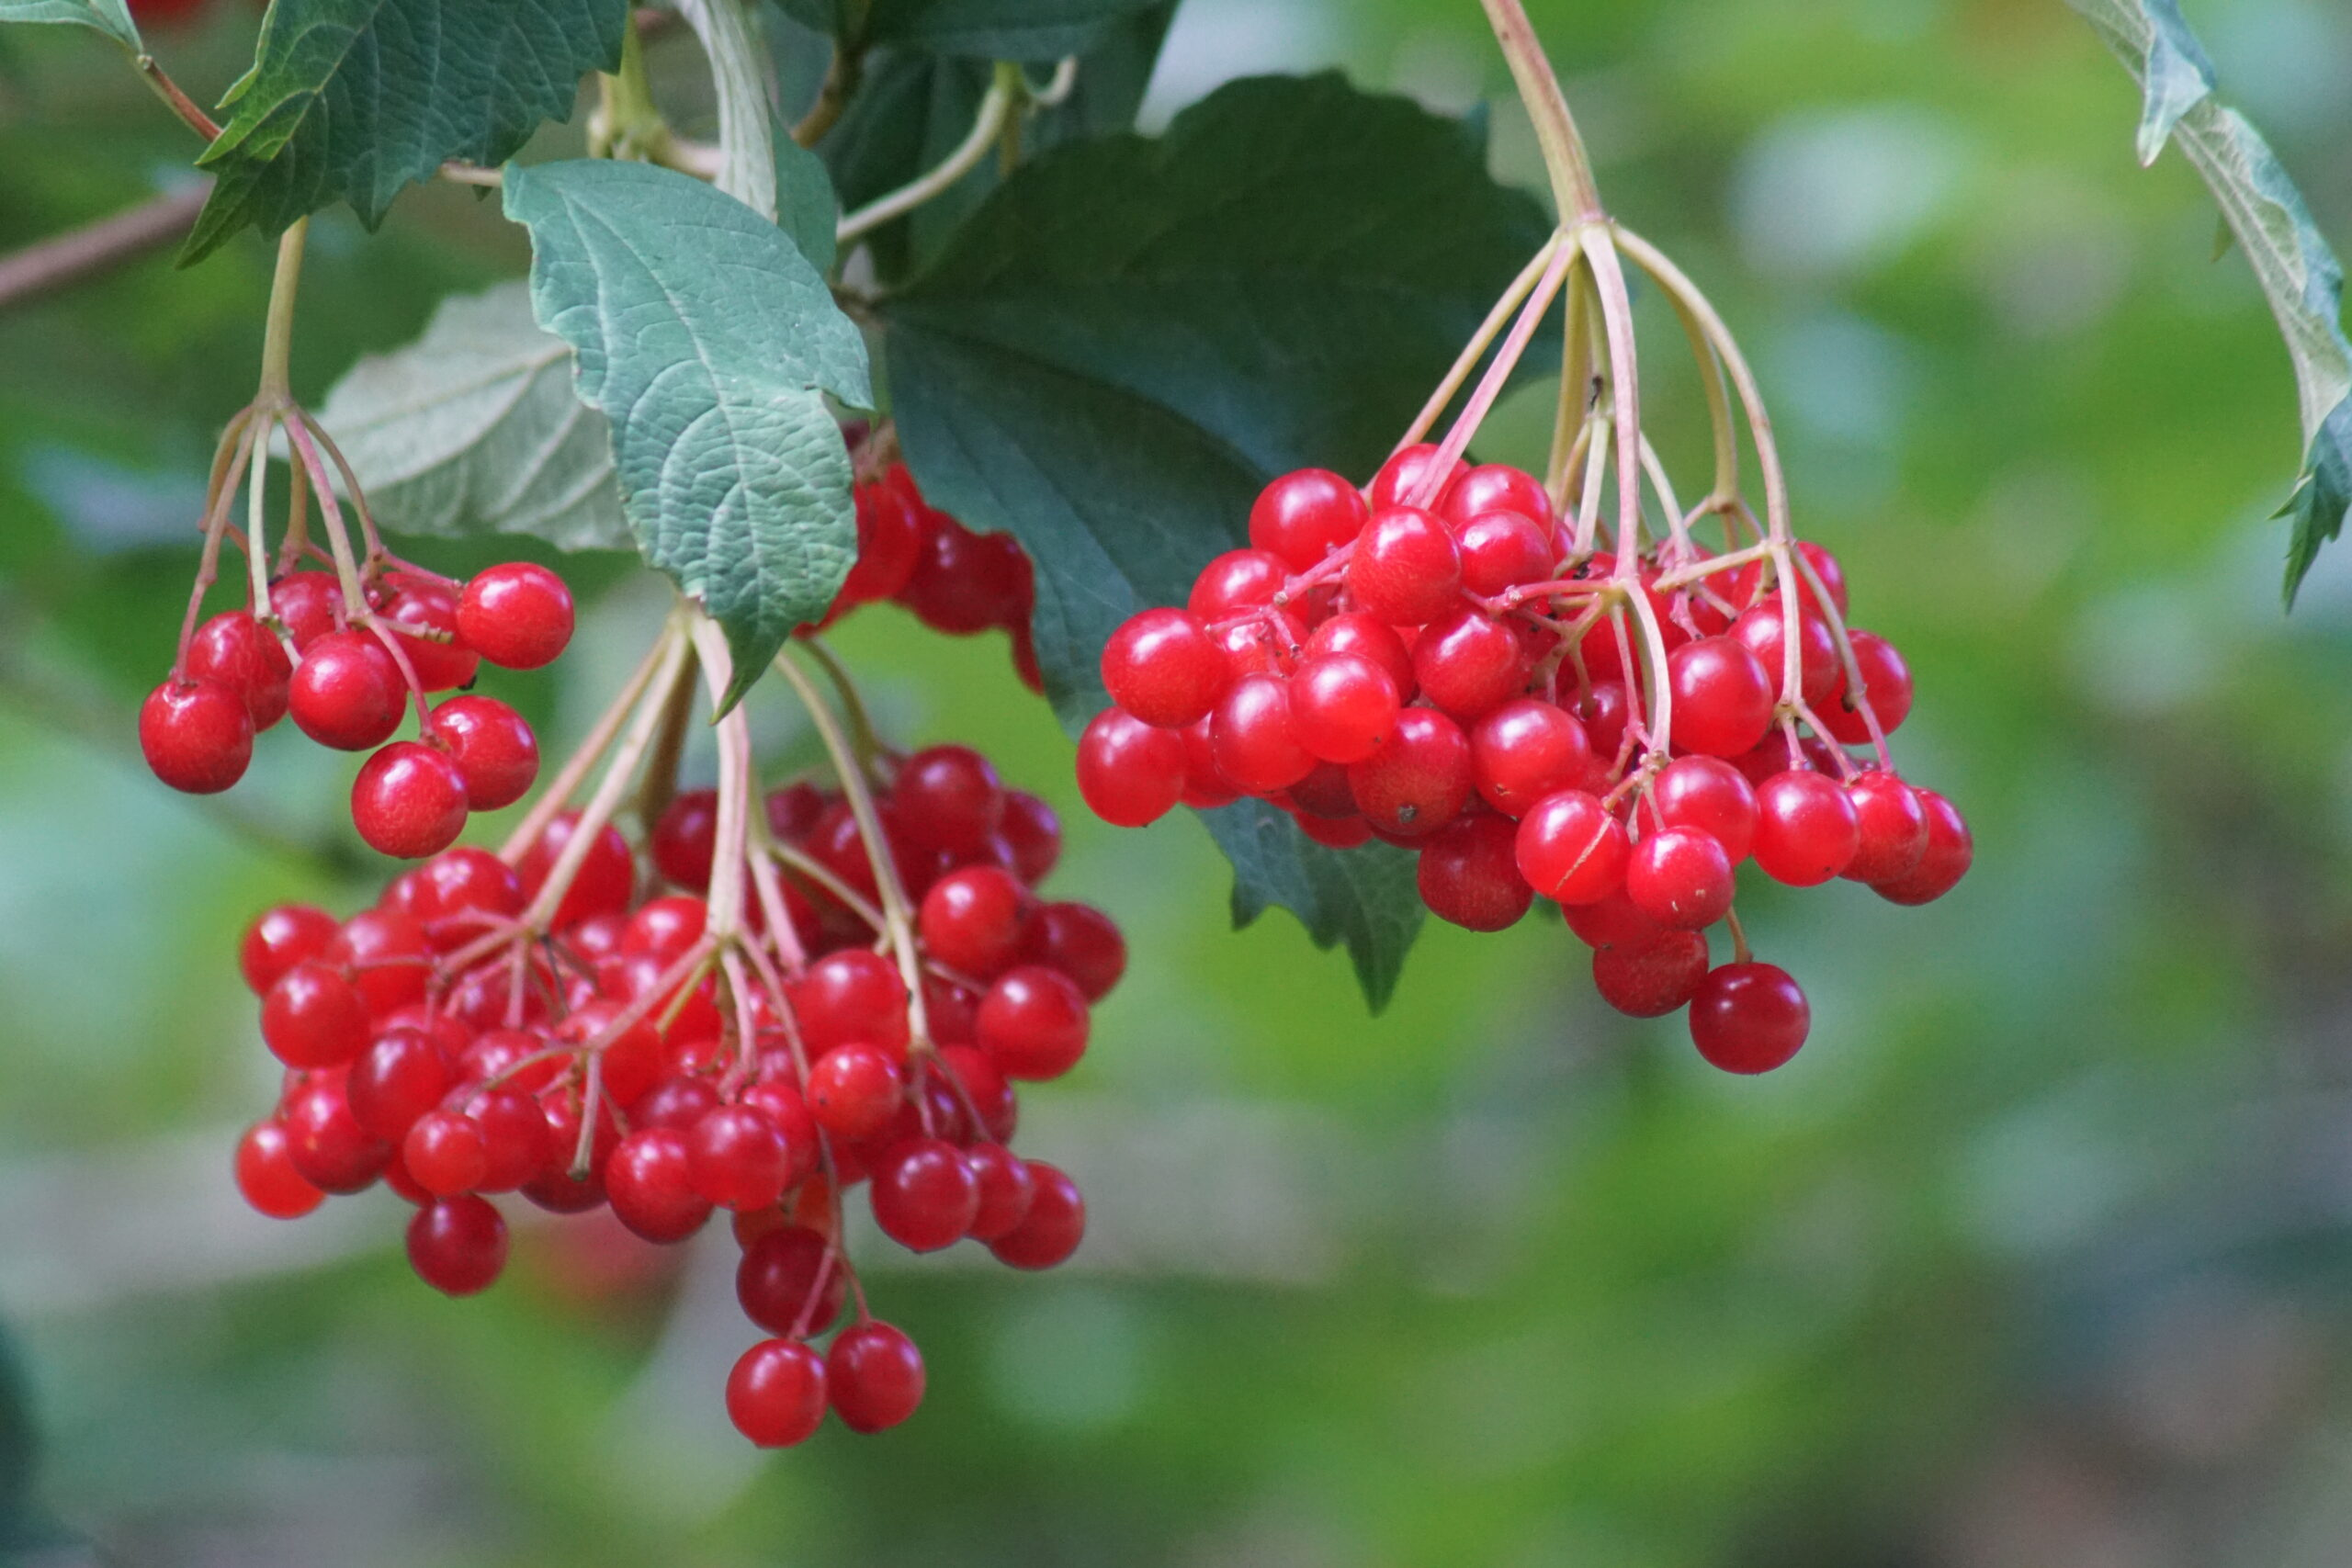 Berries on the guilder rose